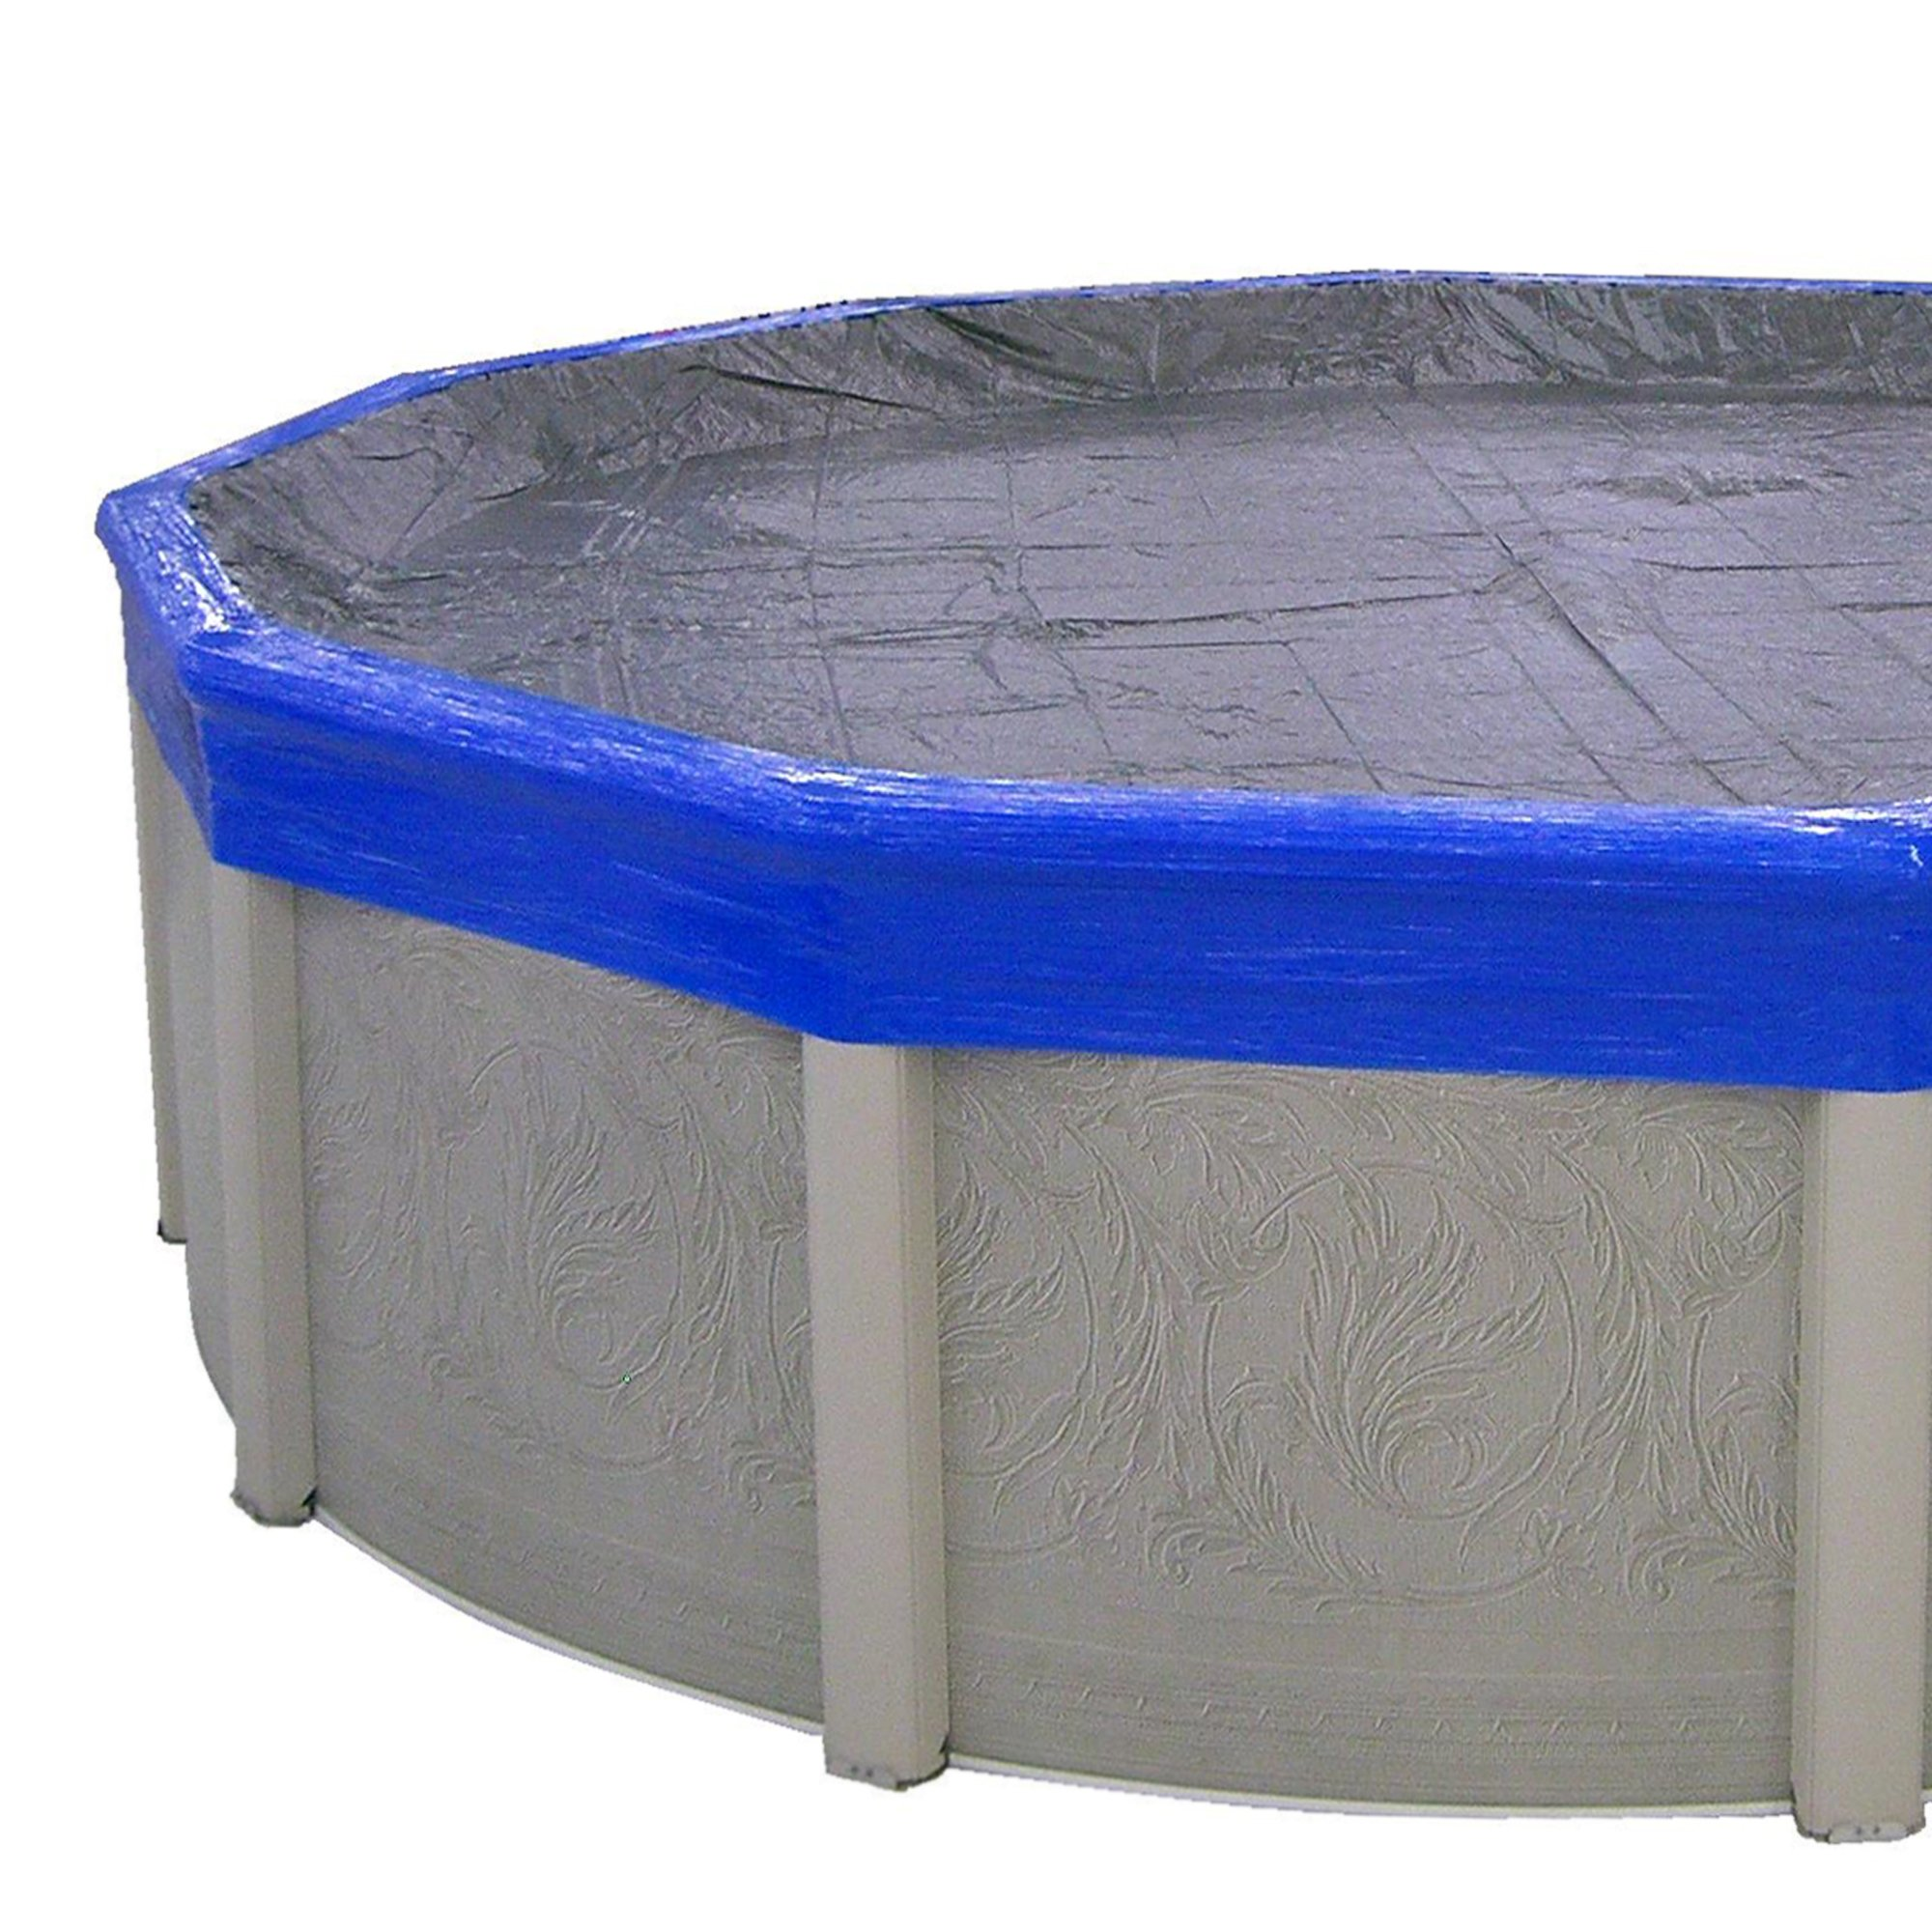 Blue Wave Winter Cover Seal for Above Ground Pool by Blue Wave